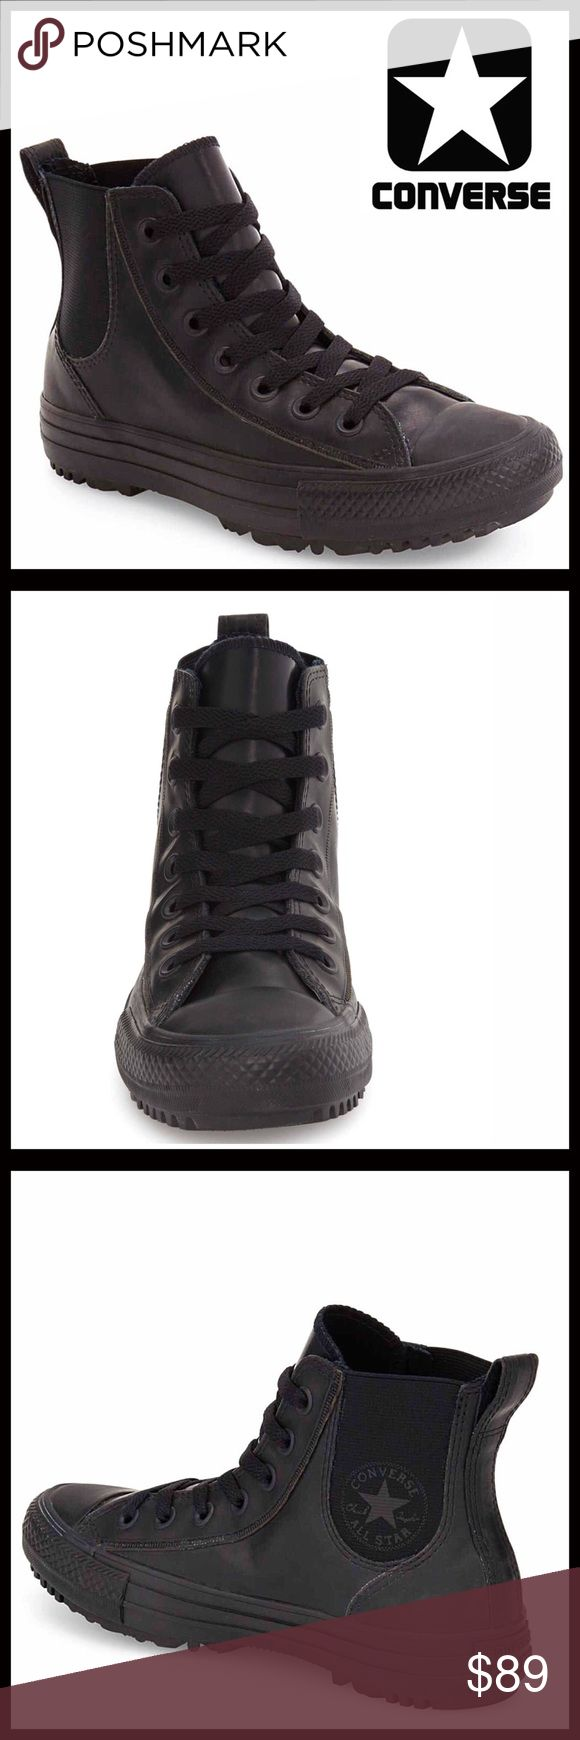 Walking dead converse shoes for sale -  1 Hour Sale Converse High Tops Water Repellent Converse Sneakers Stylish Water Repellent